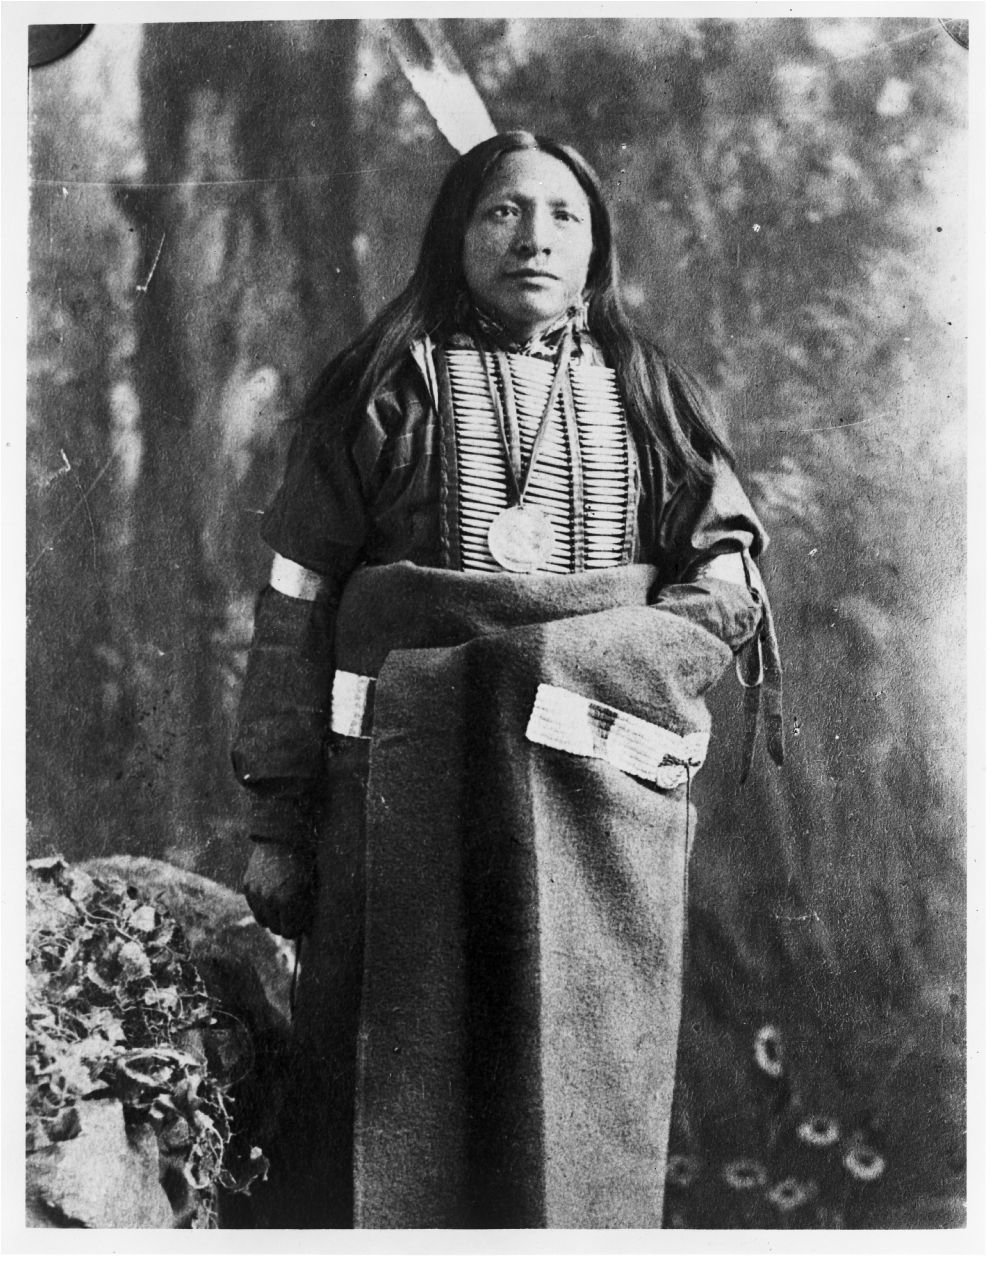 Dog Chief, Pawnee Indian scout